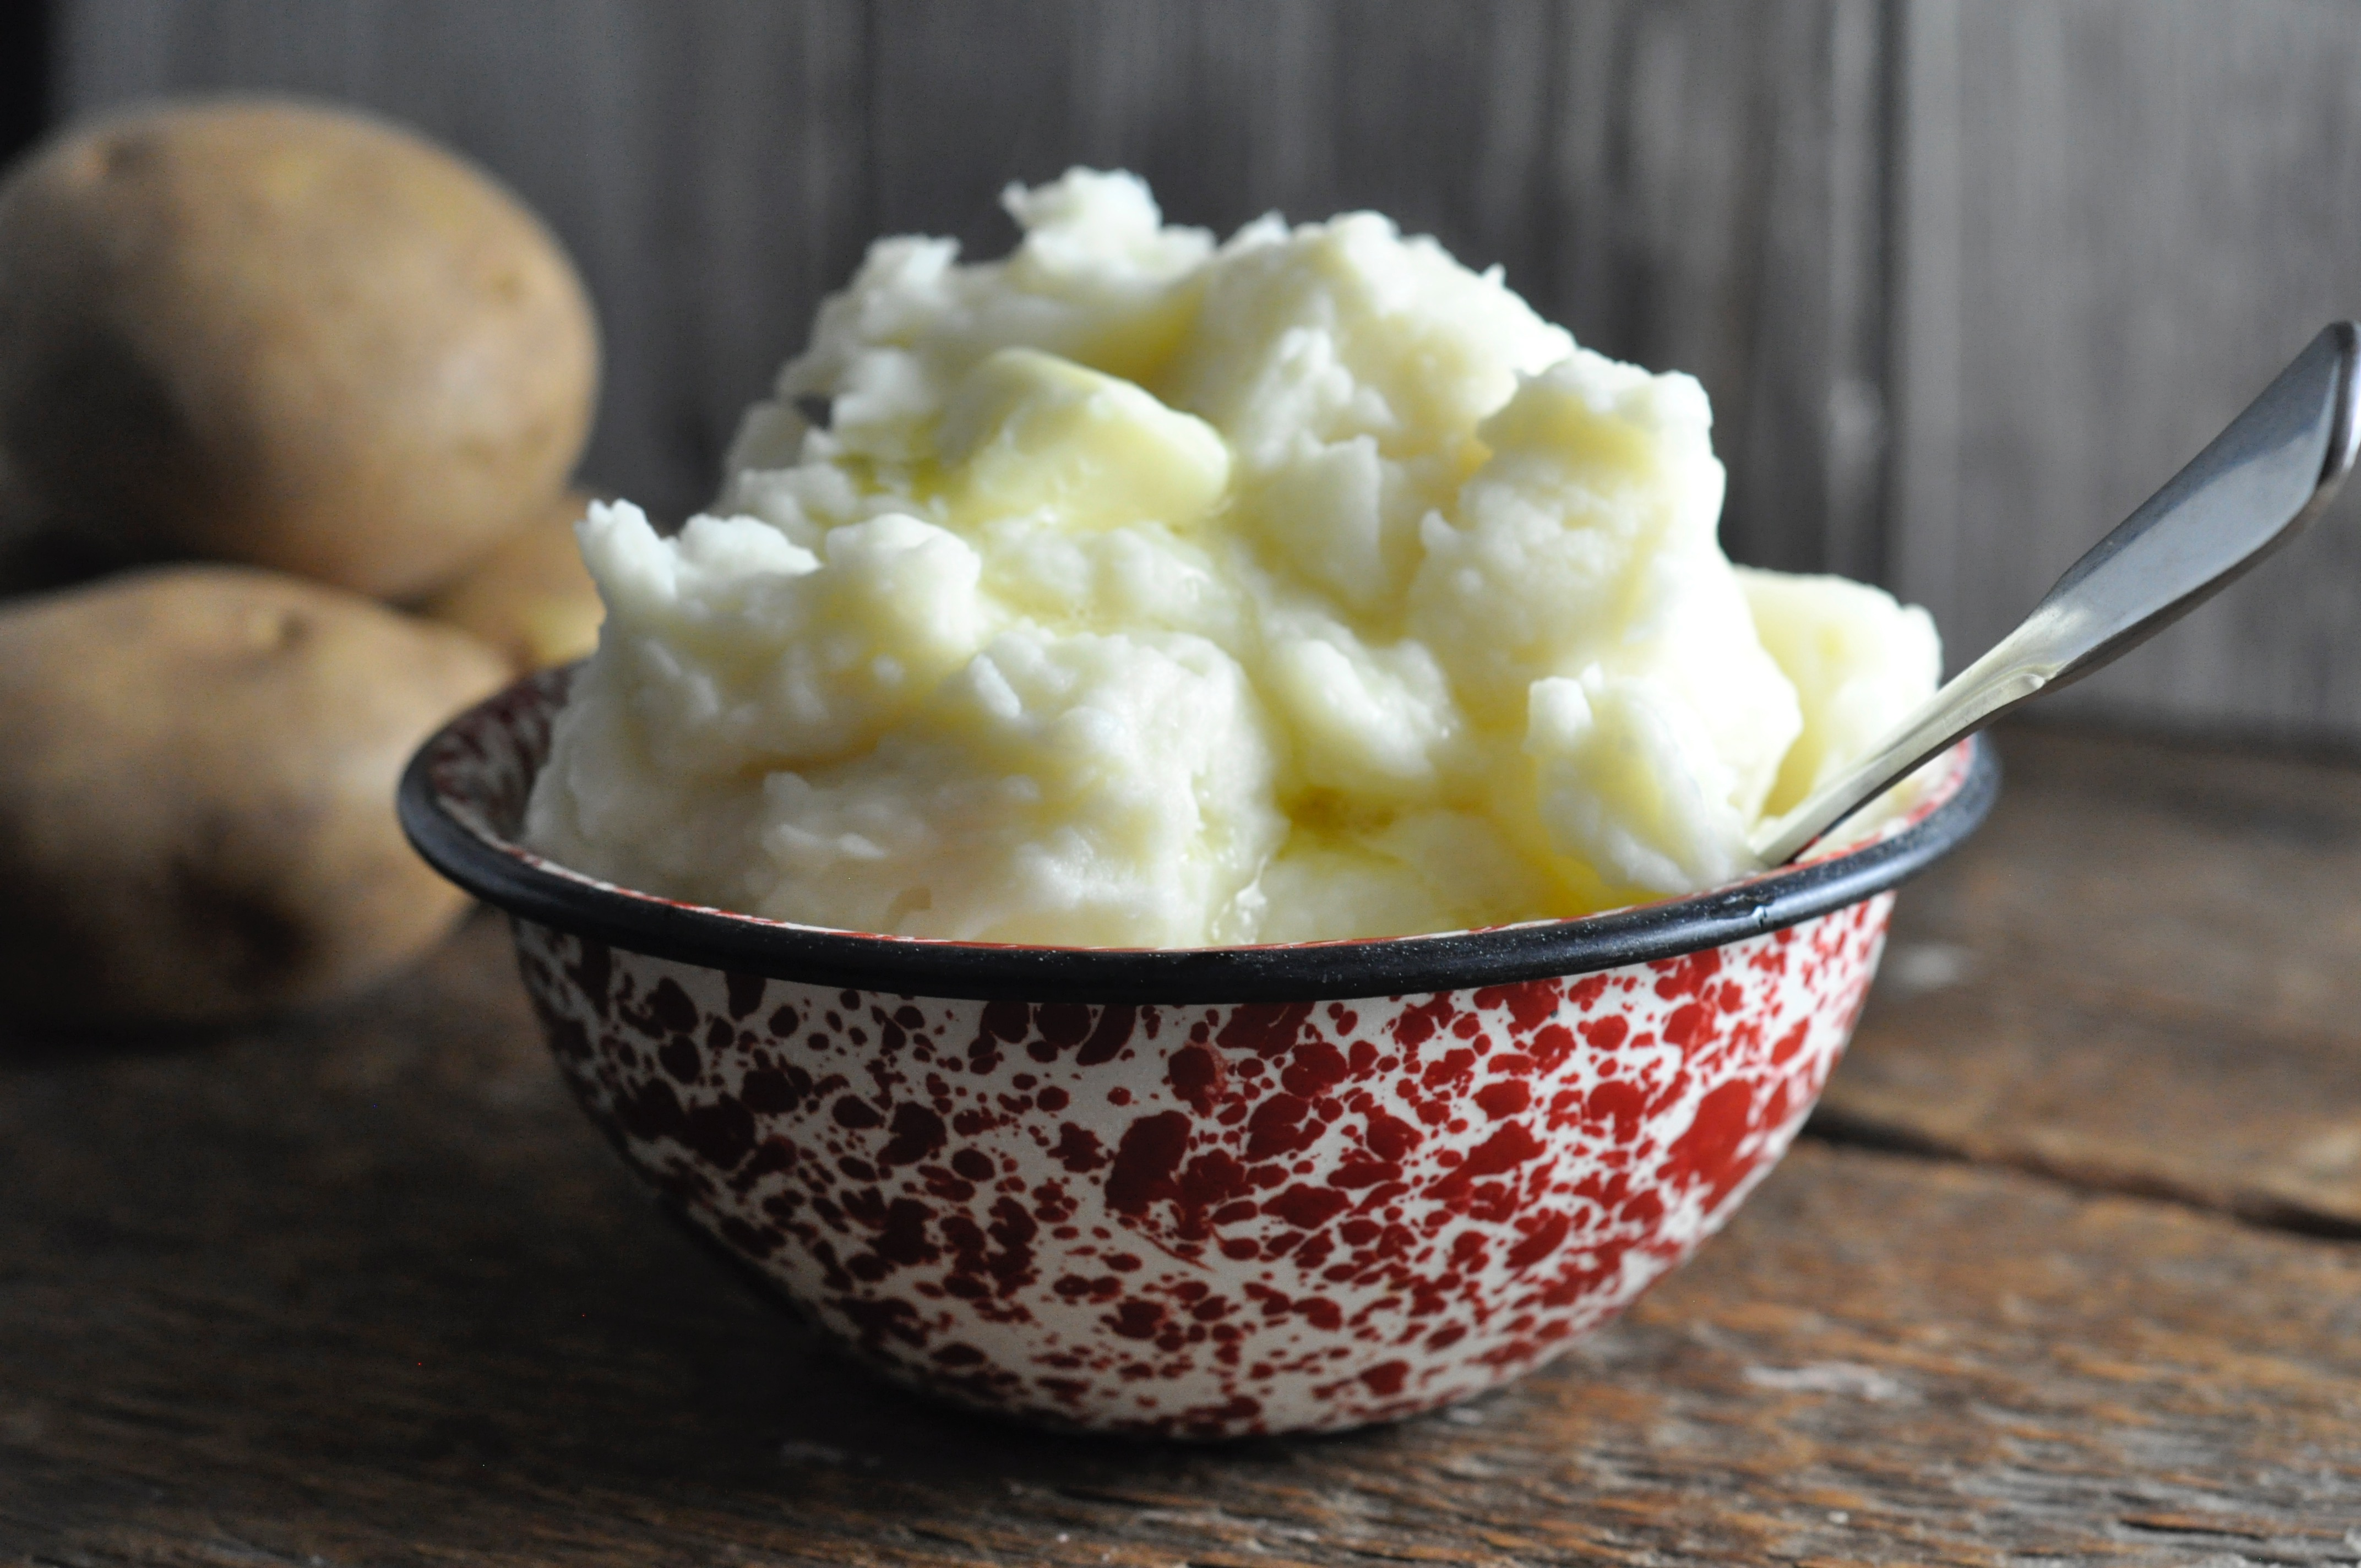 This recipe for Old Fashioned Mashed Potatoes are super simple, easy and homemade.